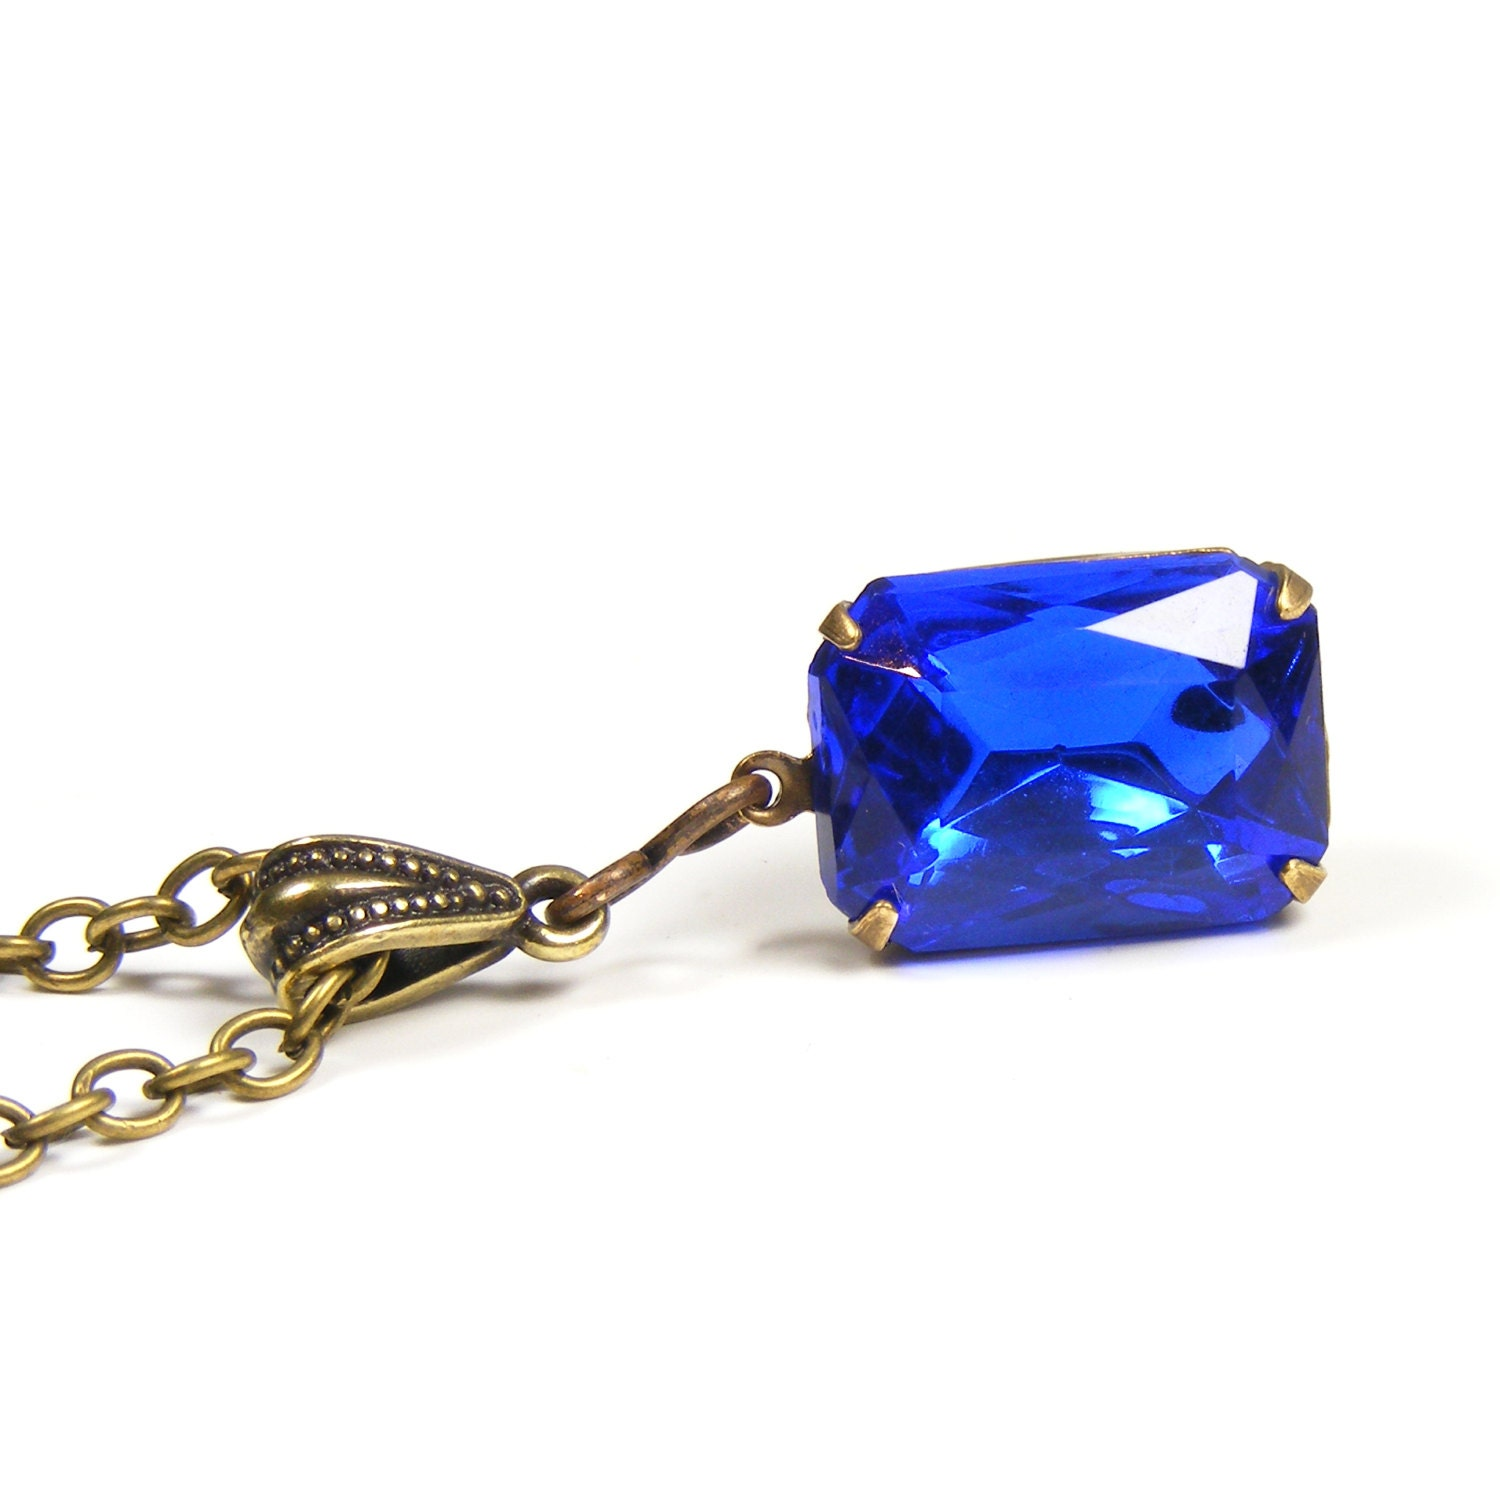 Sapphire Jewel Pendant, Vintage Swarovski Crystal, Vintage Inspired Old Hollywood Estate Style Pendant, Sapphire Blue